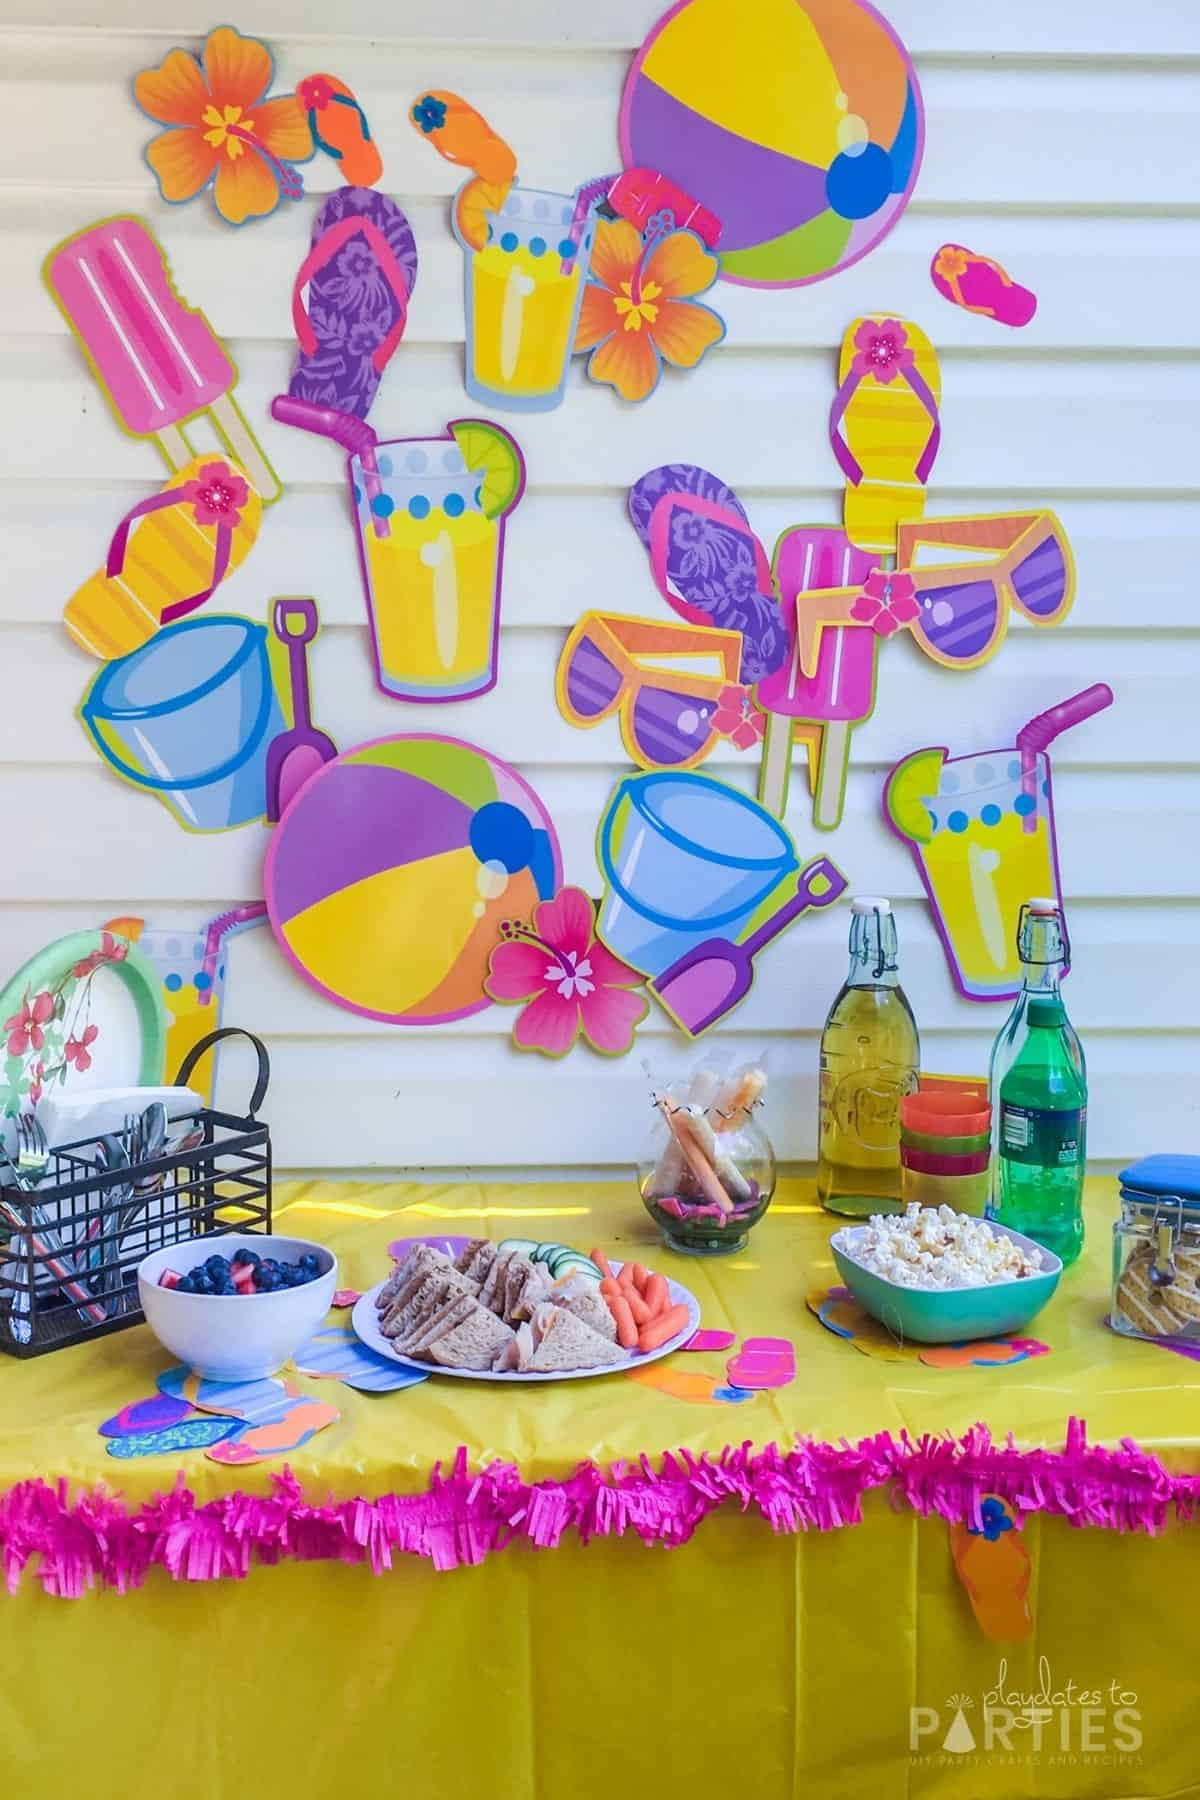 photo of a summer party table with beach themed paper cutouts on the wall, a yellow tablecloth and pink fringe around the edge